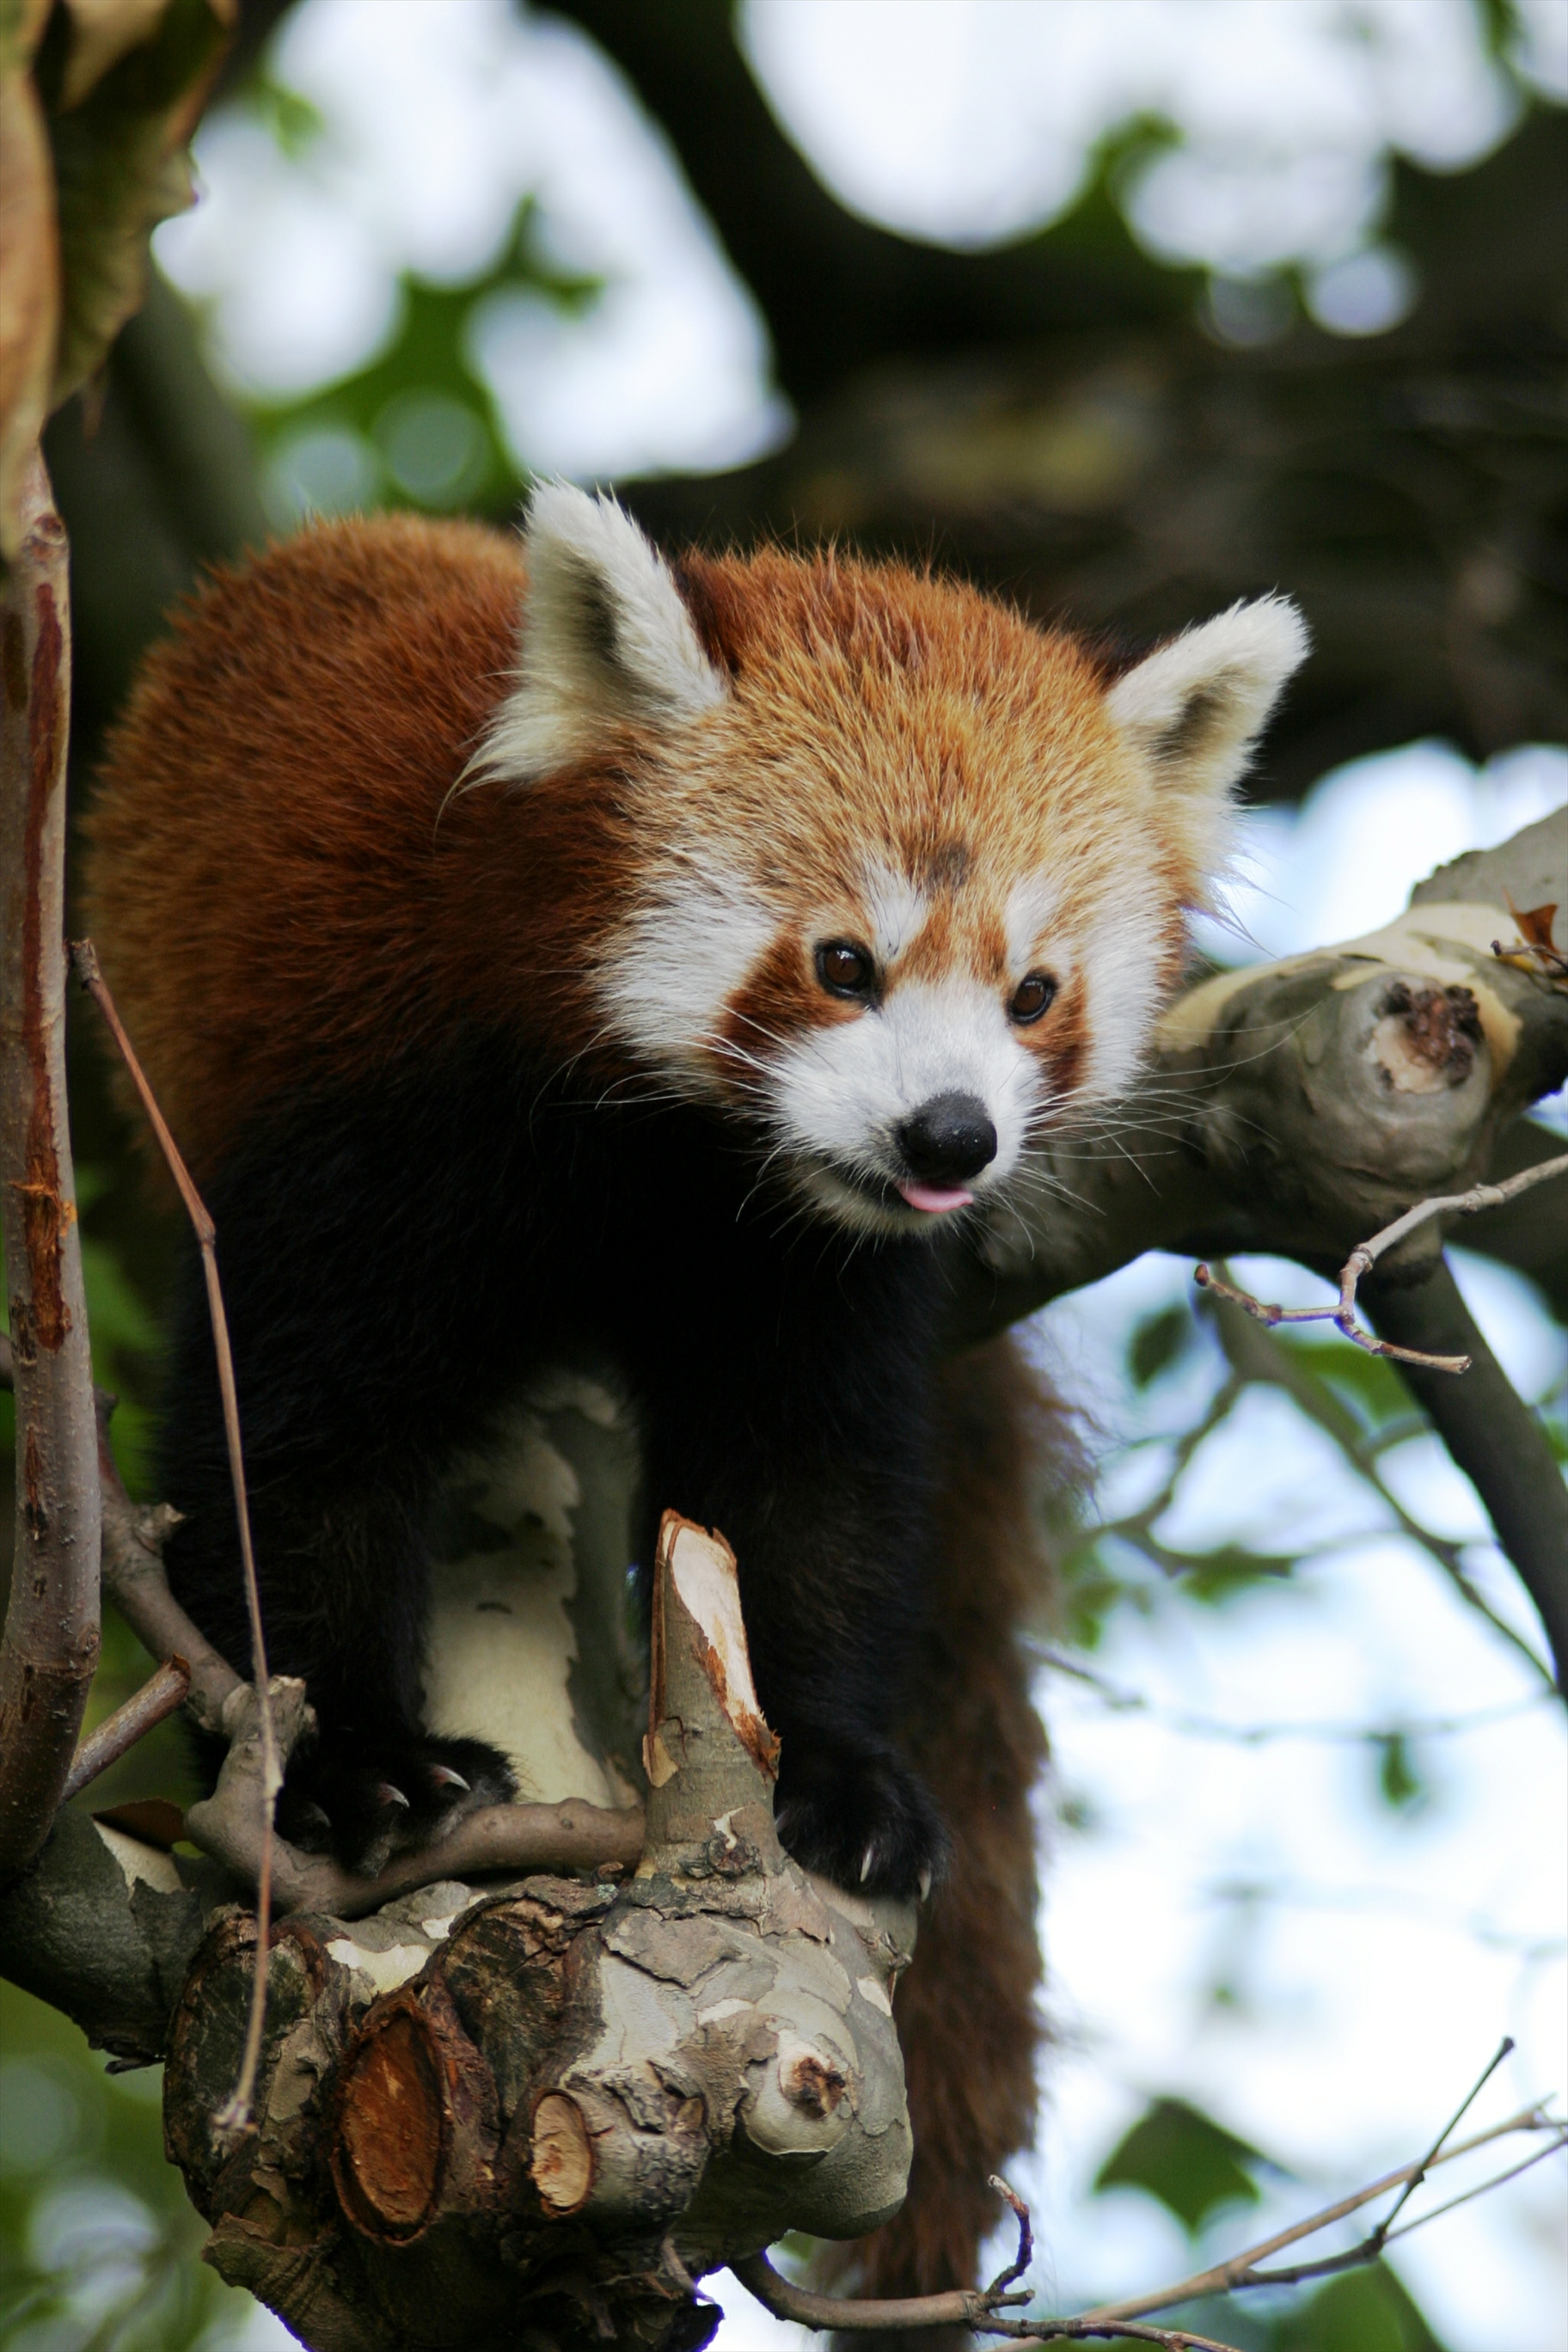 148277 download wallpaper Animals, Red Panda, Animal, Protruding Tongue, Tongue Stuck Out, Trees screensavers and pictures for free